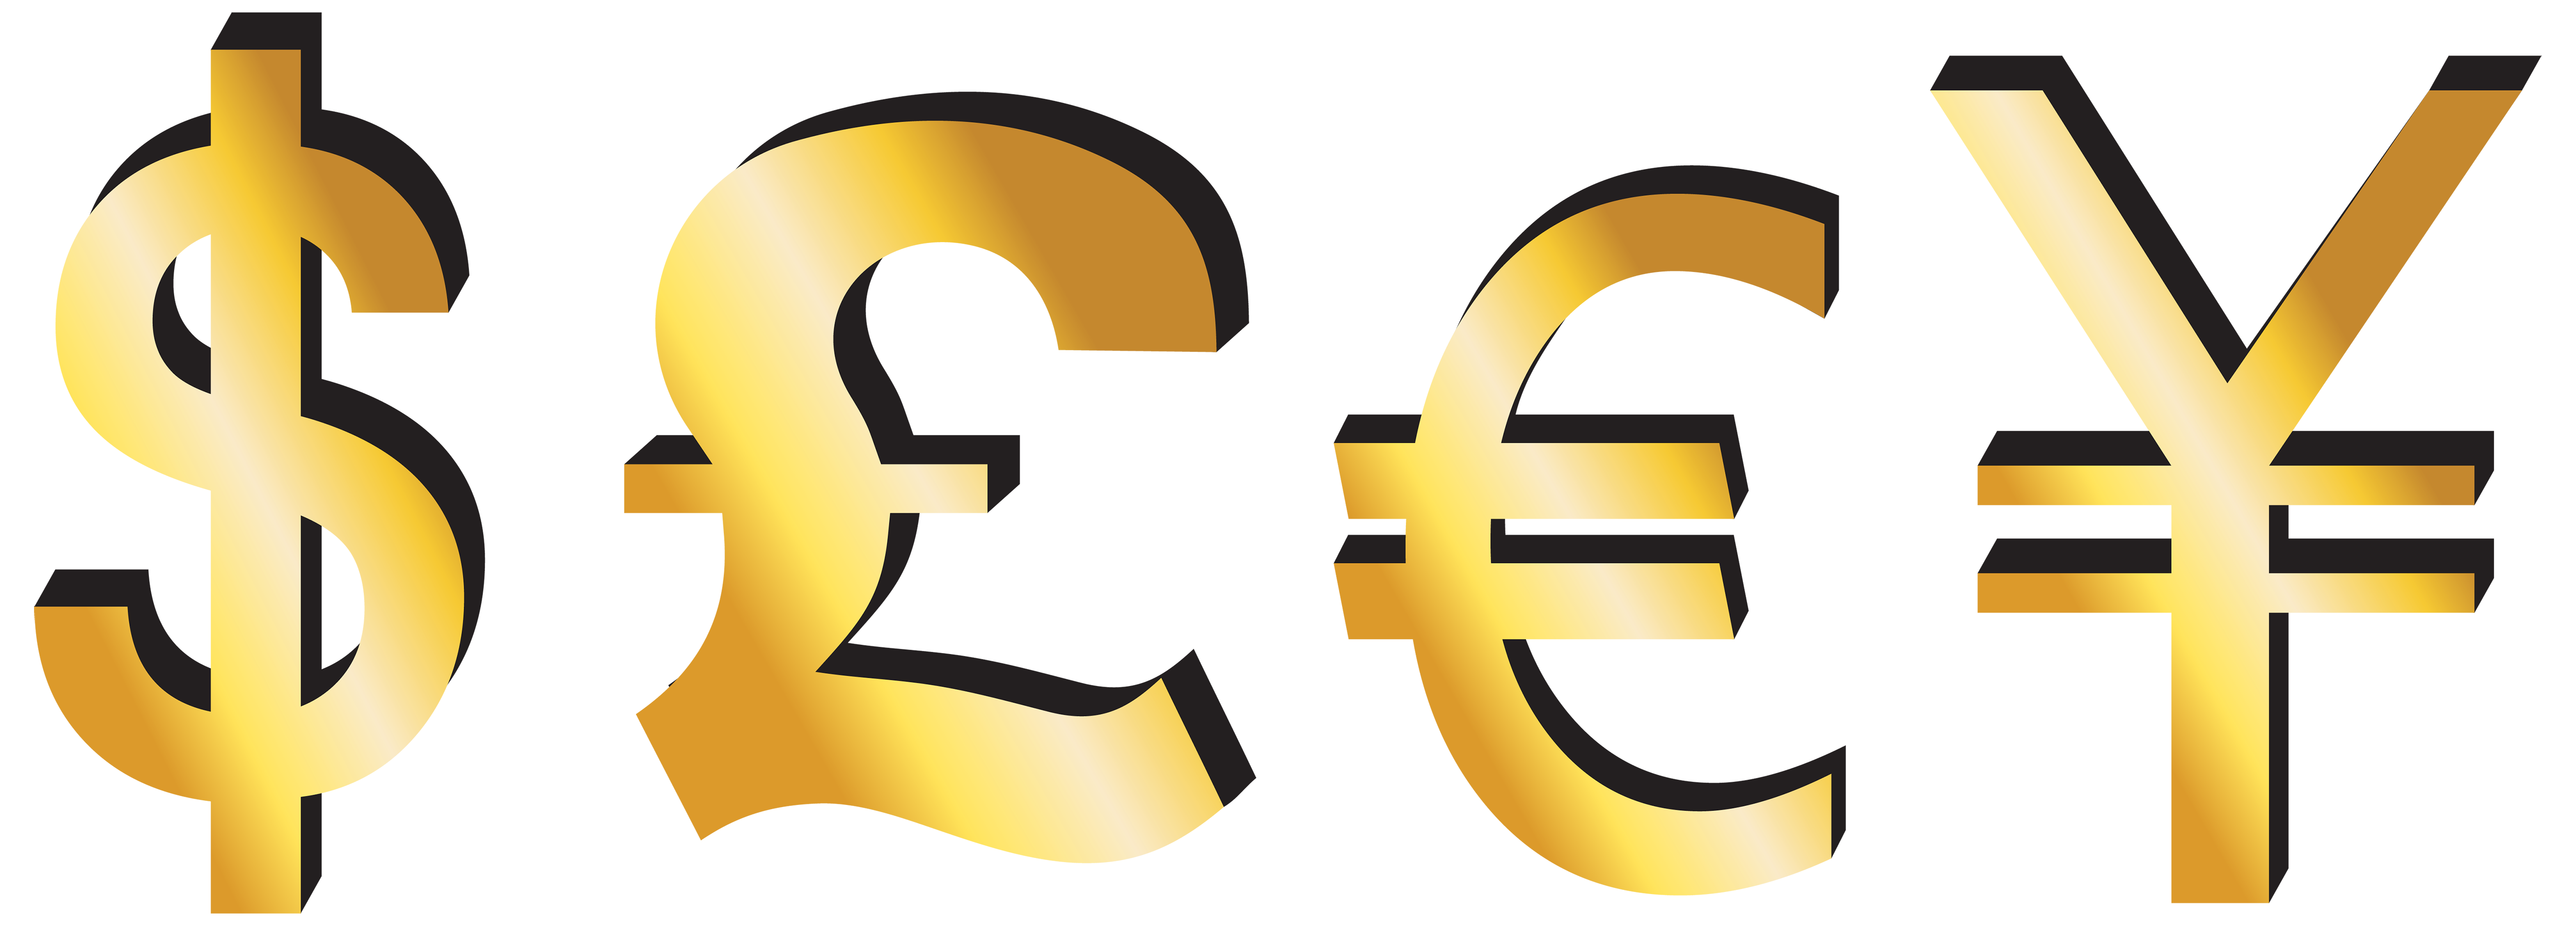 Person with money signs as eyes clipart jpg Dollar Pound Euro Yen Signs PNG Clipart - Best WEB Clipart jpg